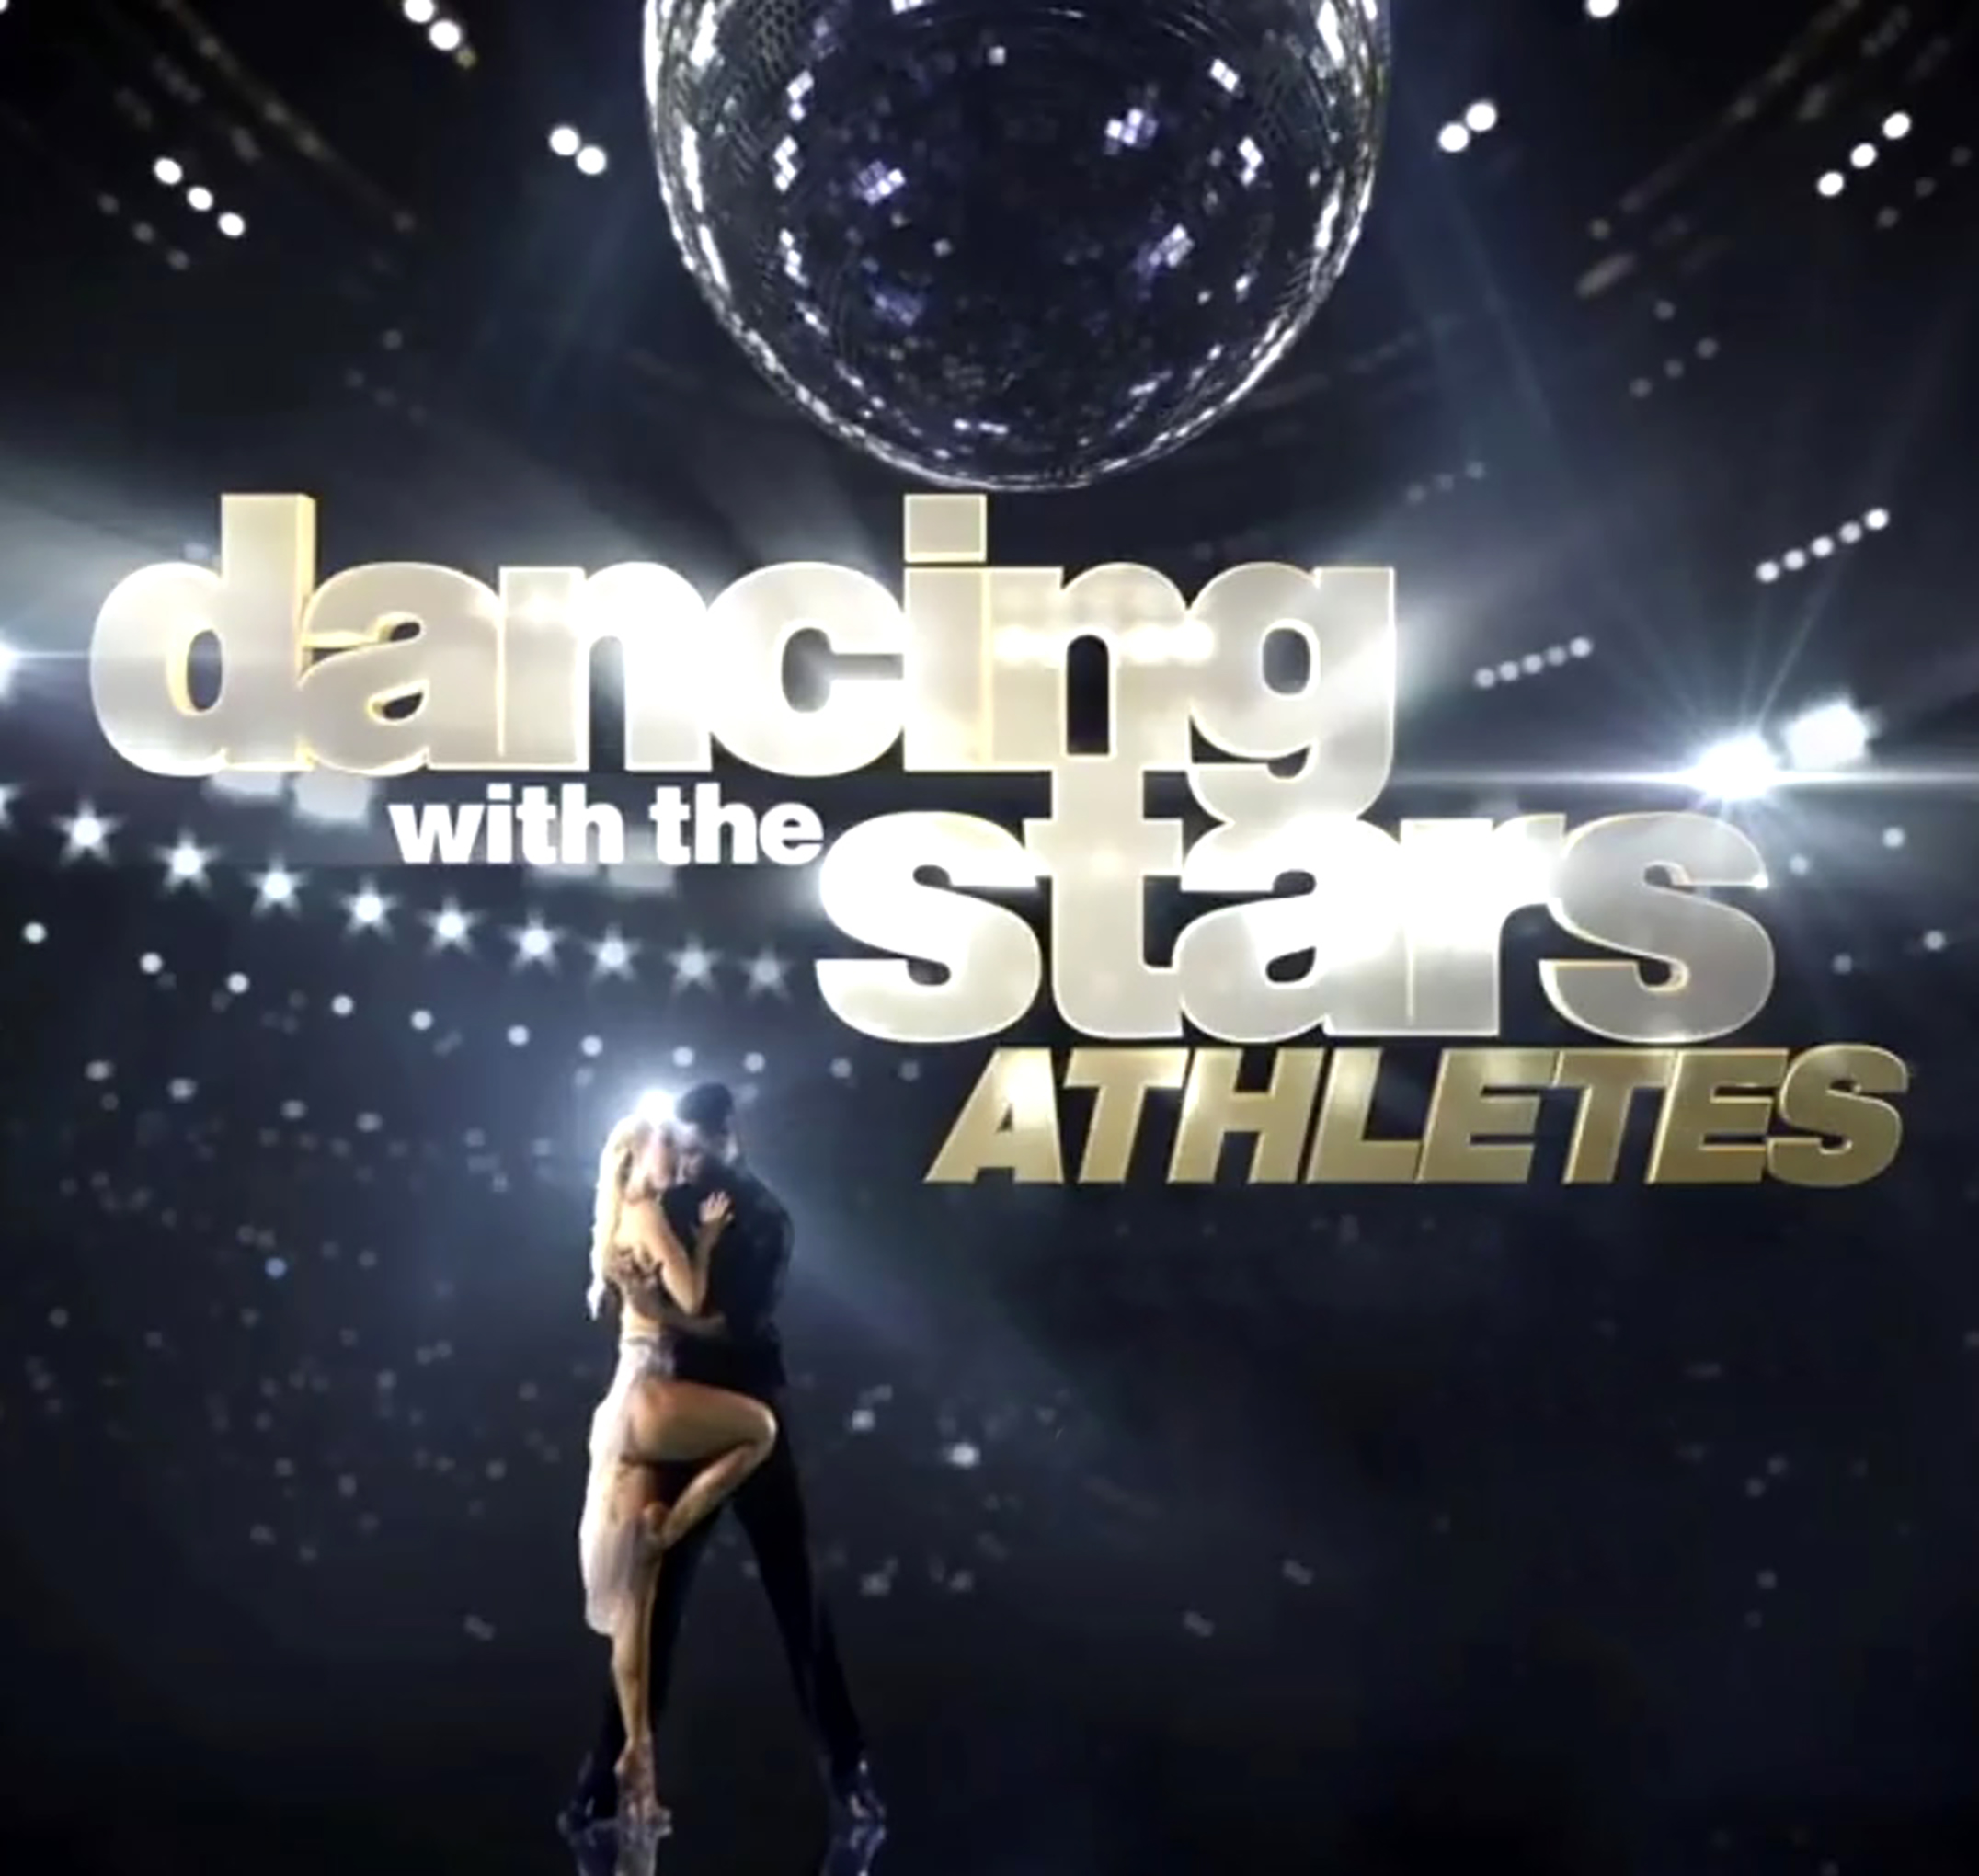 dancing-with-the-stars-athletes-season-cast-revealed